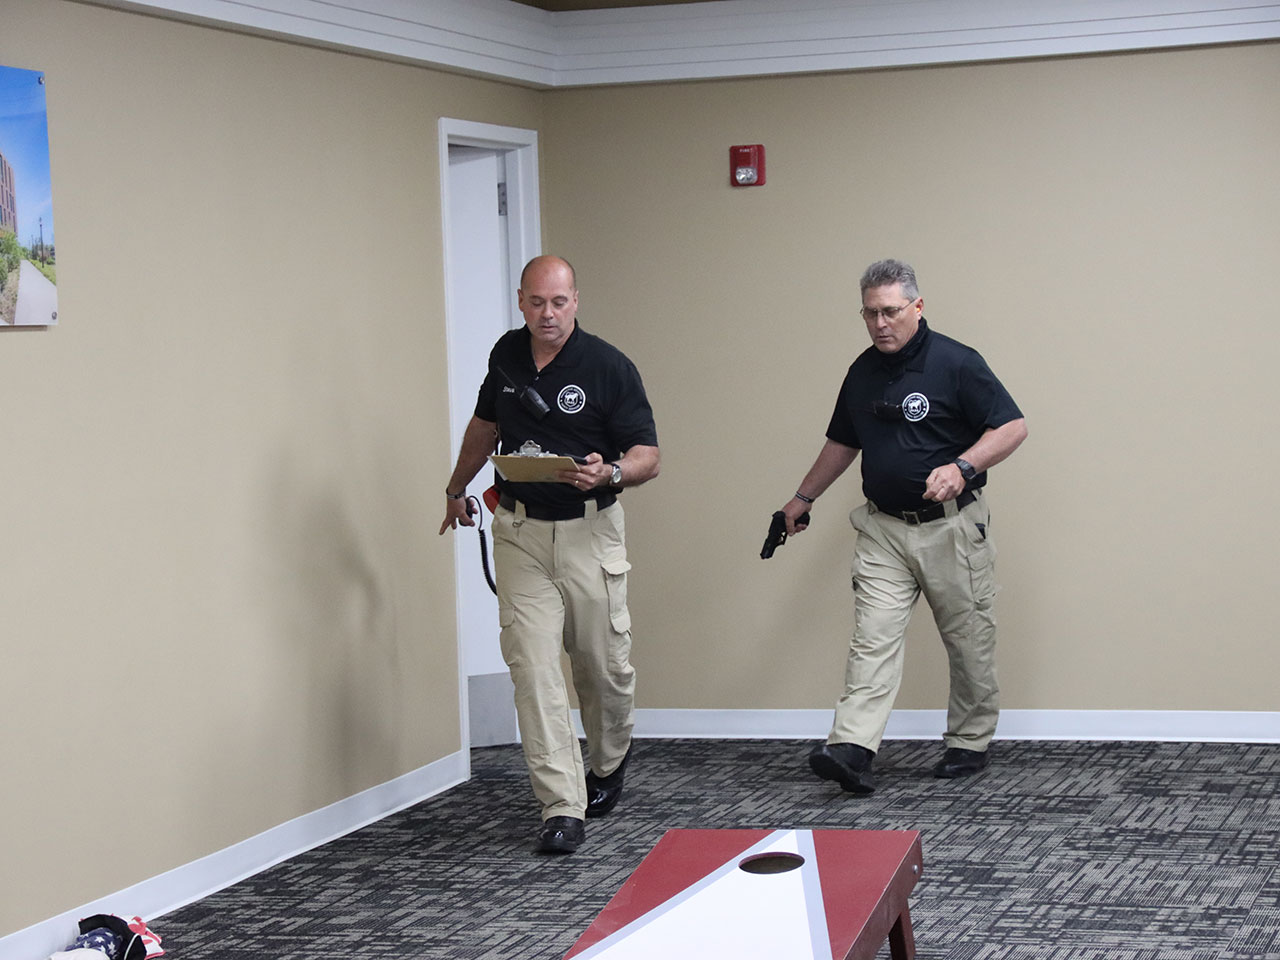 PASS active shooter training in progress